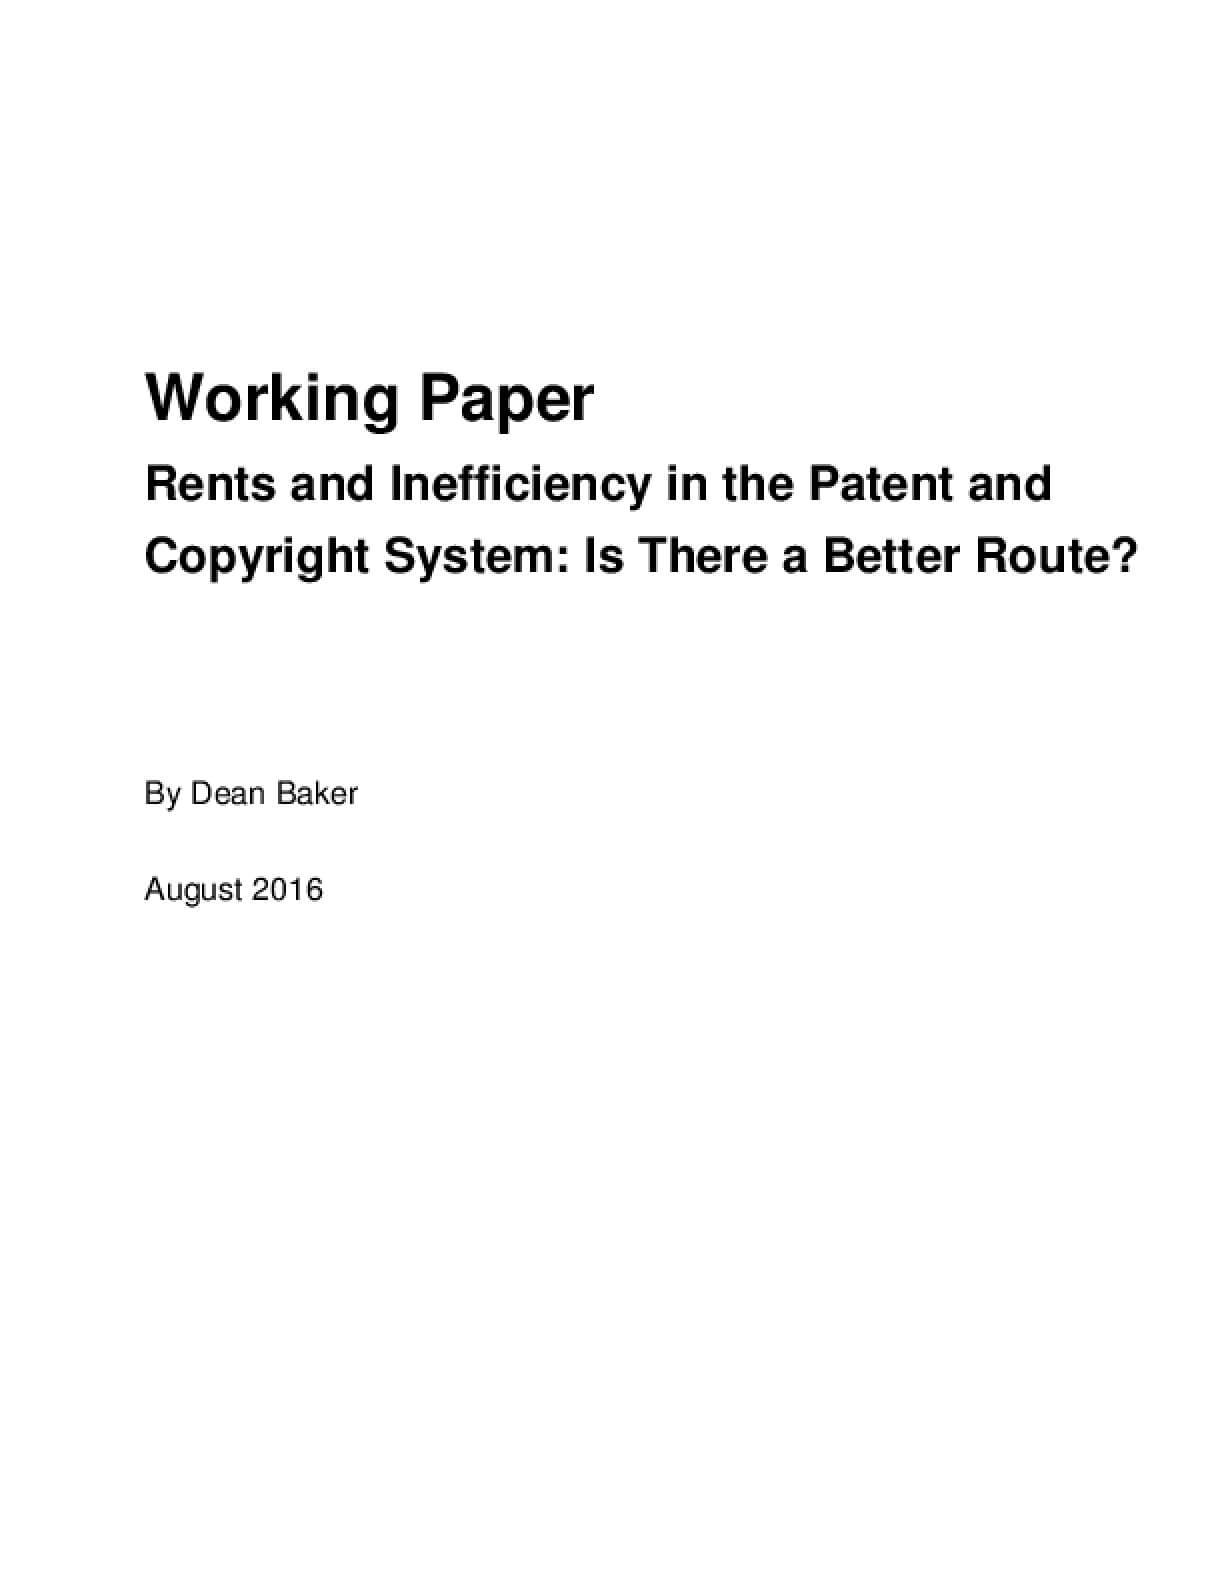 Working Paper, Rents and Inefficiency in the Patent and Copyright System: Is There a Better Route?